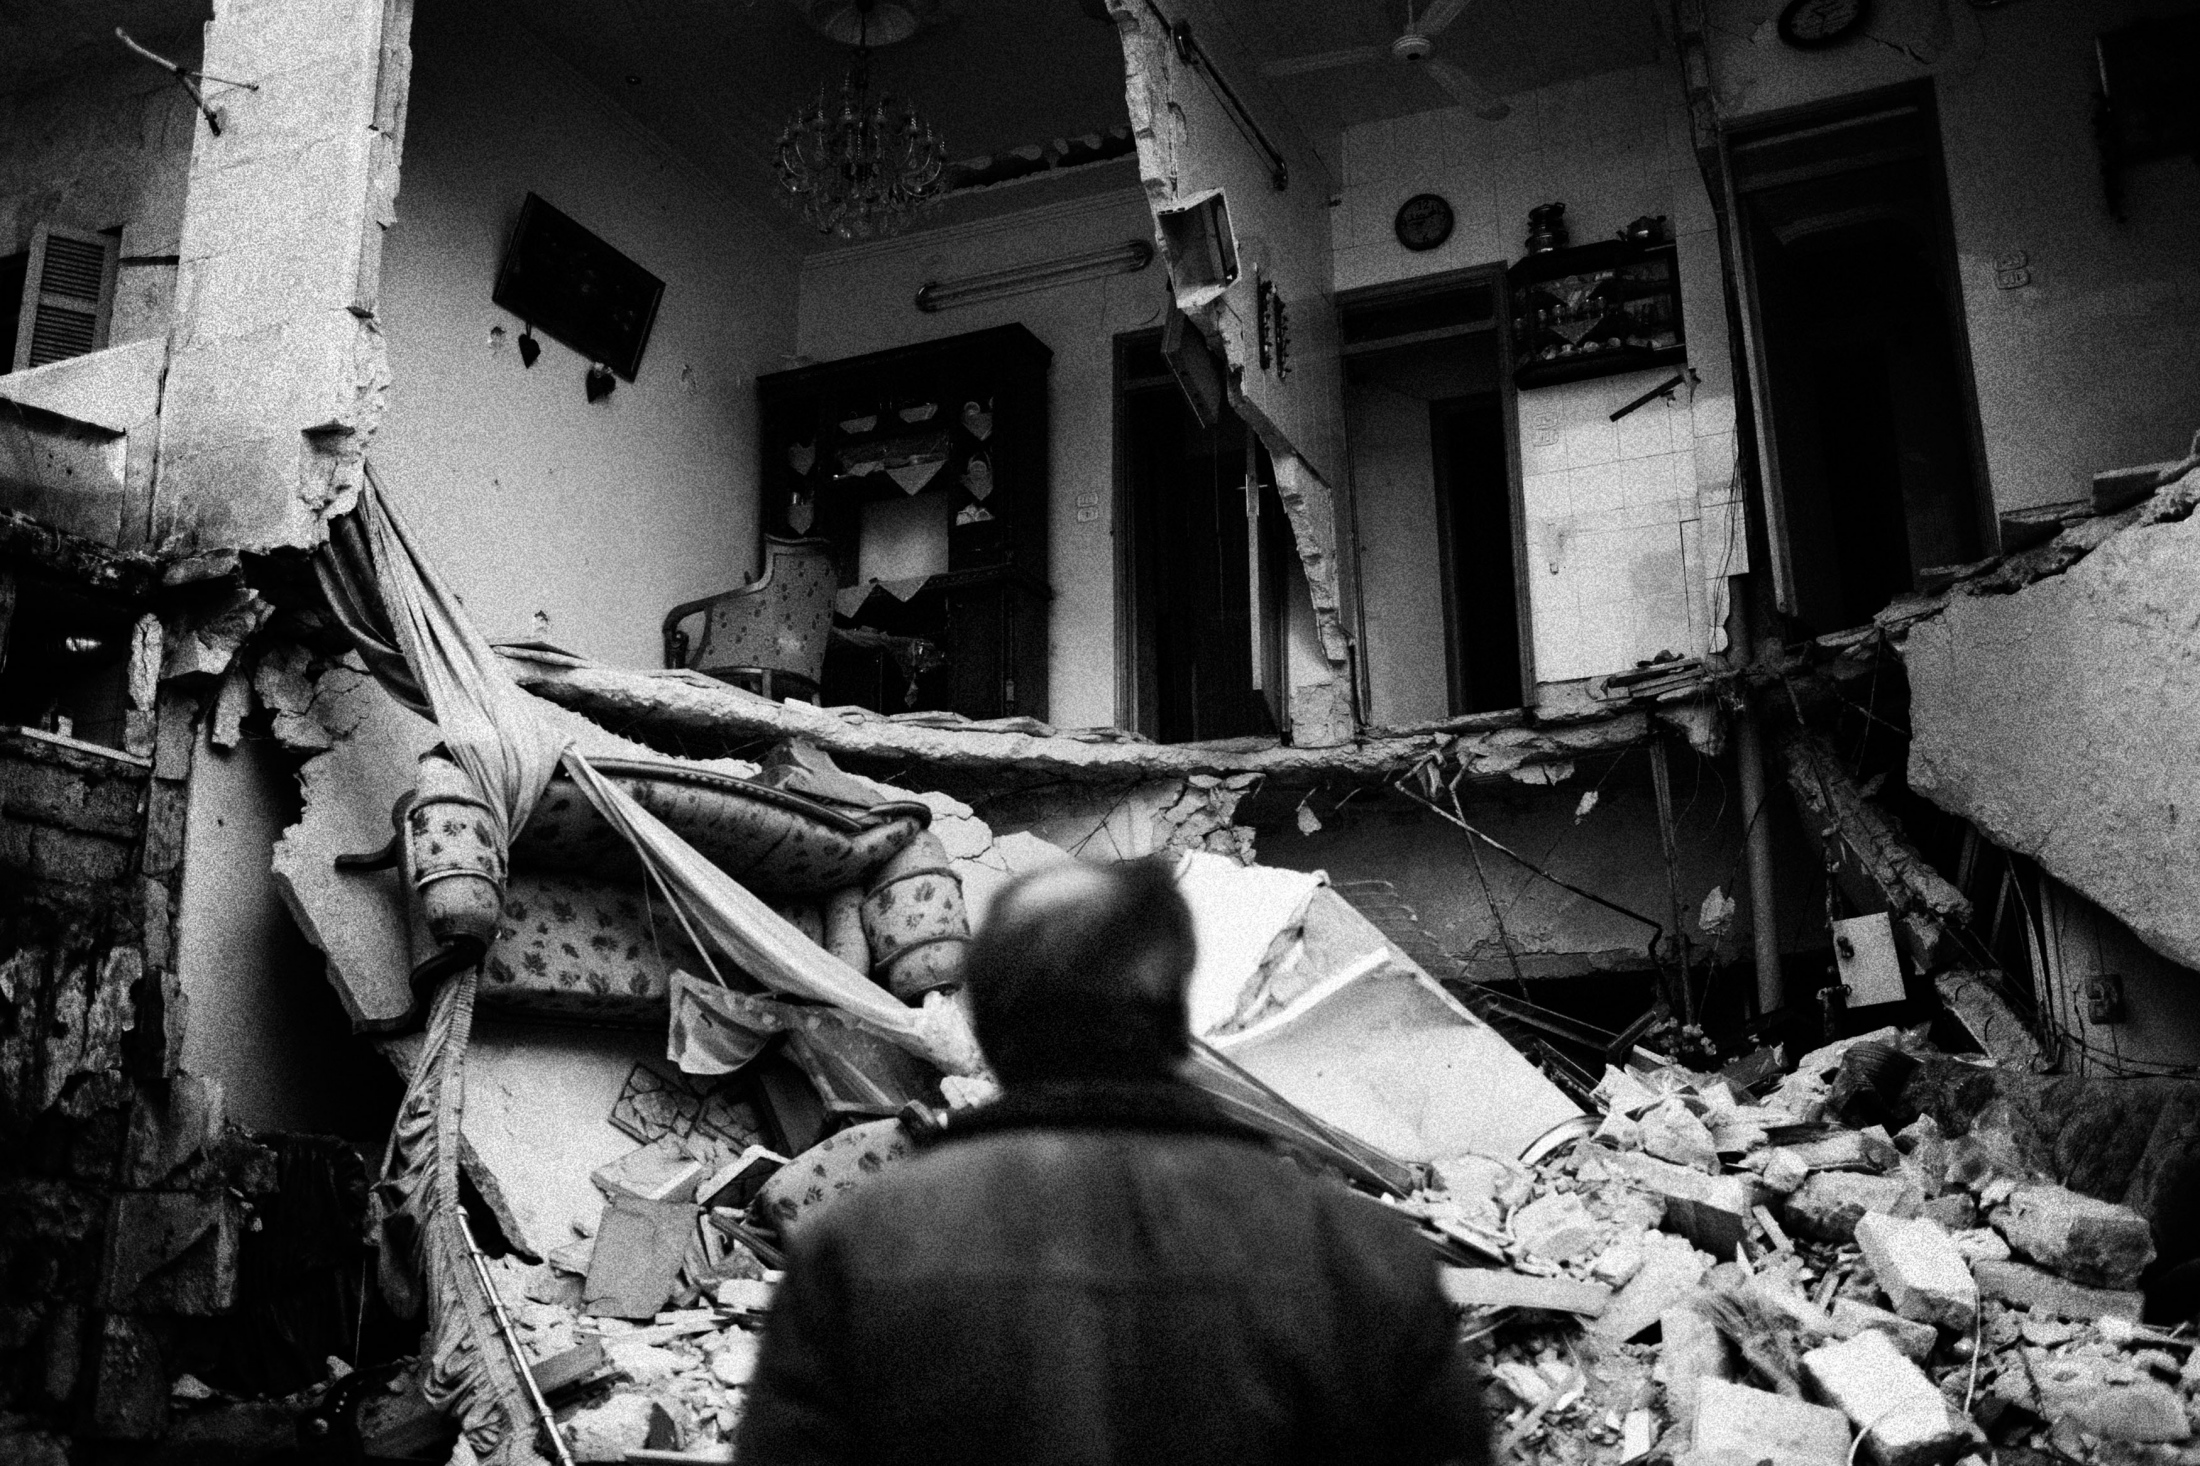 """A man watching his destroyed house in Izaah neighborhood of Aleppo, Syria, Wednesday, Jan. 2, 2013. The United Nations estimated that more than 400,000 people have been killed in Syria's 60-month-old uprising against authoritarian rule, a toll one-third higher than what anti-regime activists had counted. The U.N. human rights chief called the toll """"truly shocking."""" Copyright: Spanish Photojournalist Andoni Lubaki"""